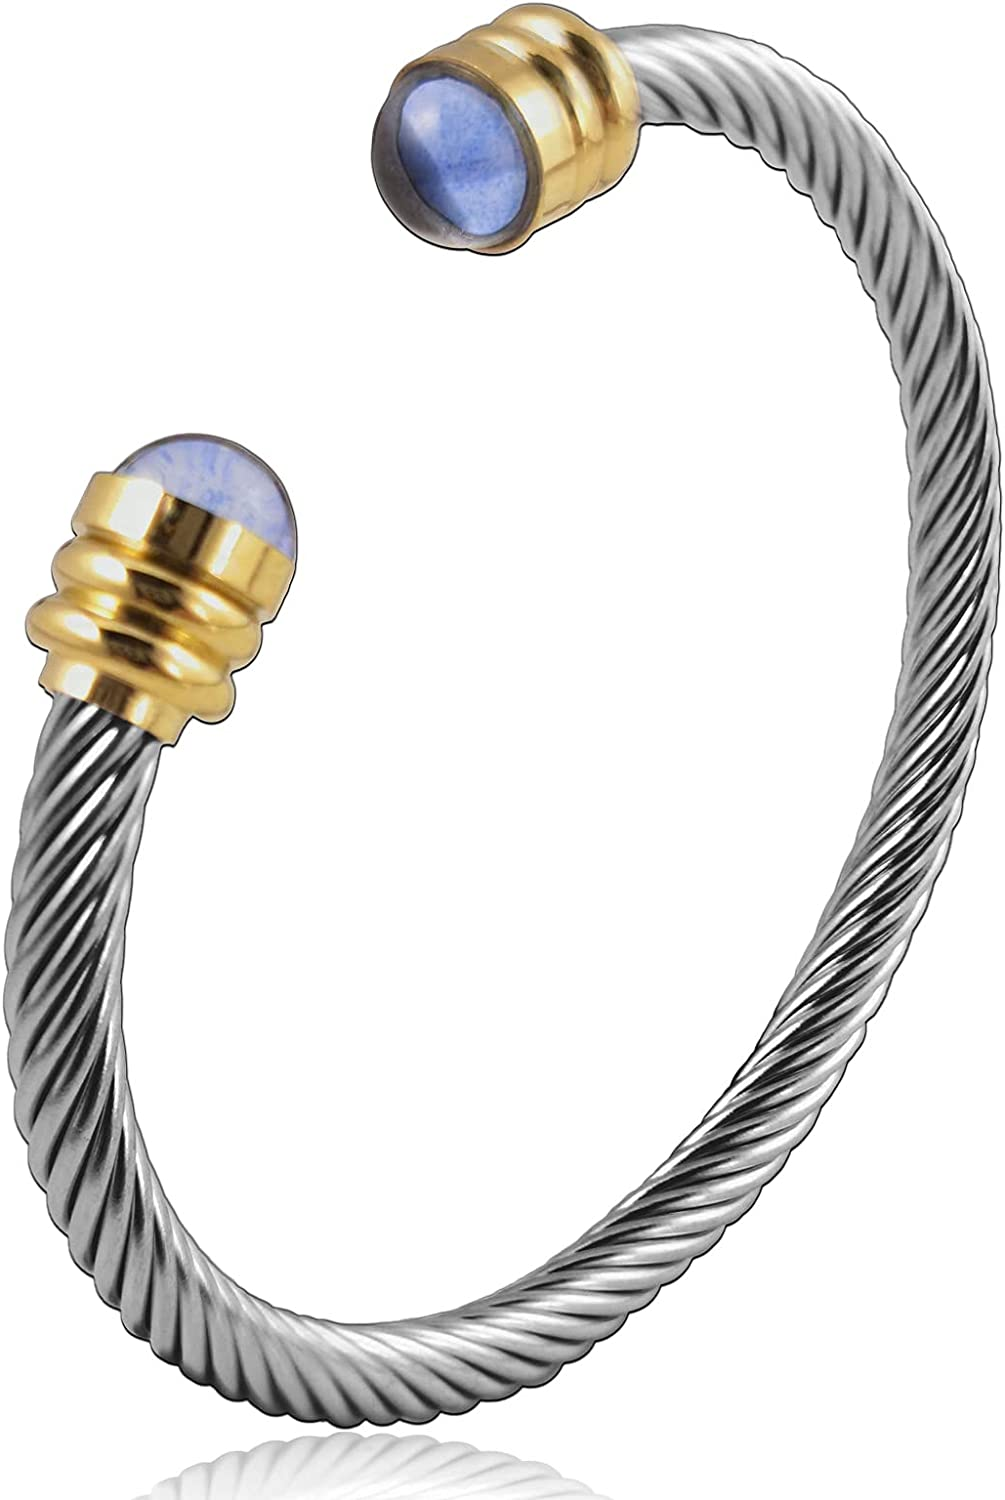 Cuff Bracelet for Women Stainless Steel Arm Twist Cable Cuff Bangle Bracelet Stackable